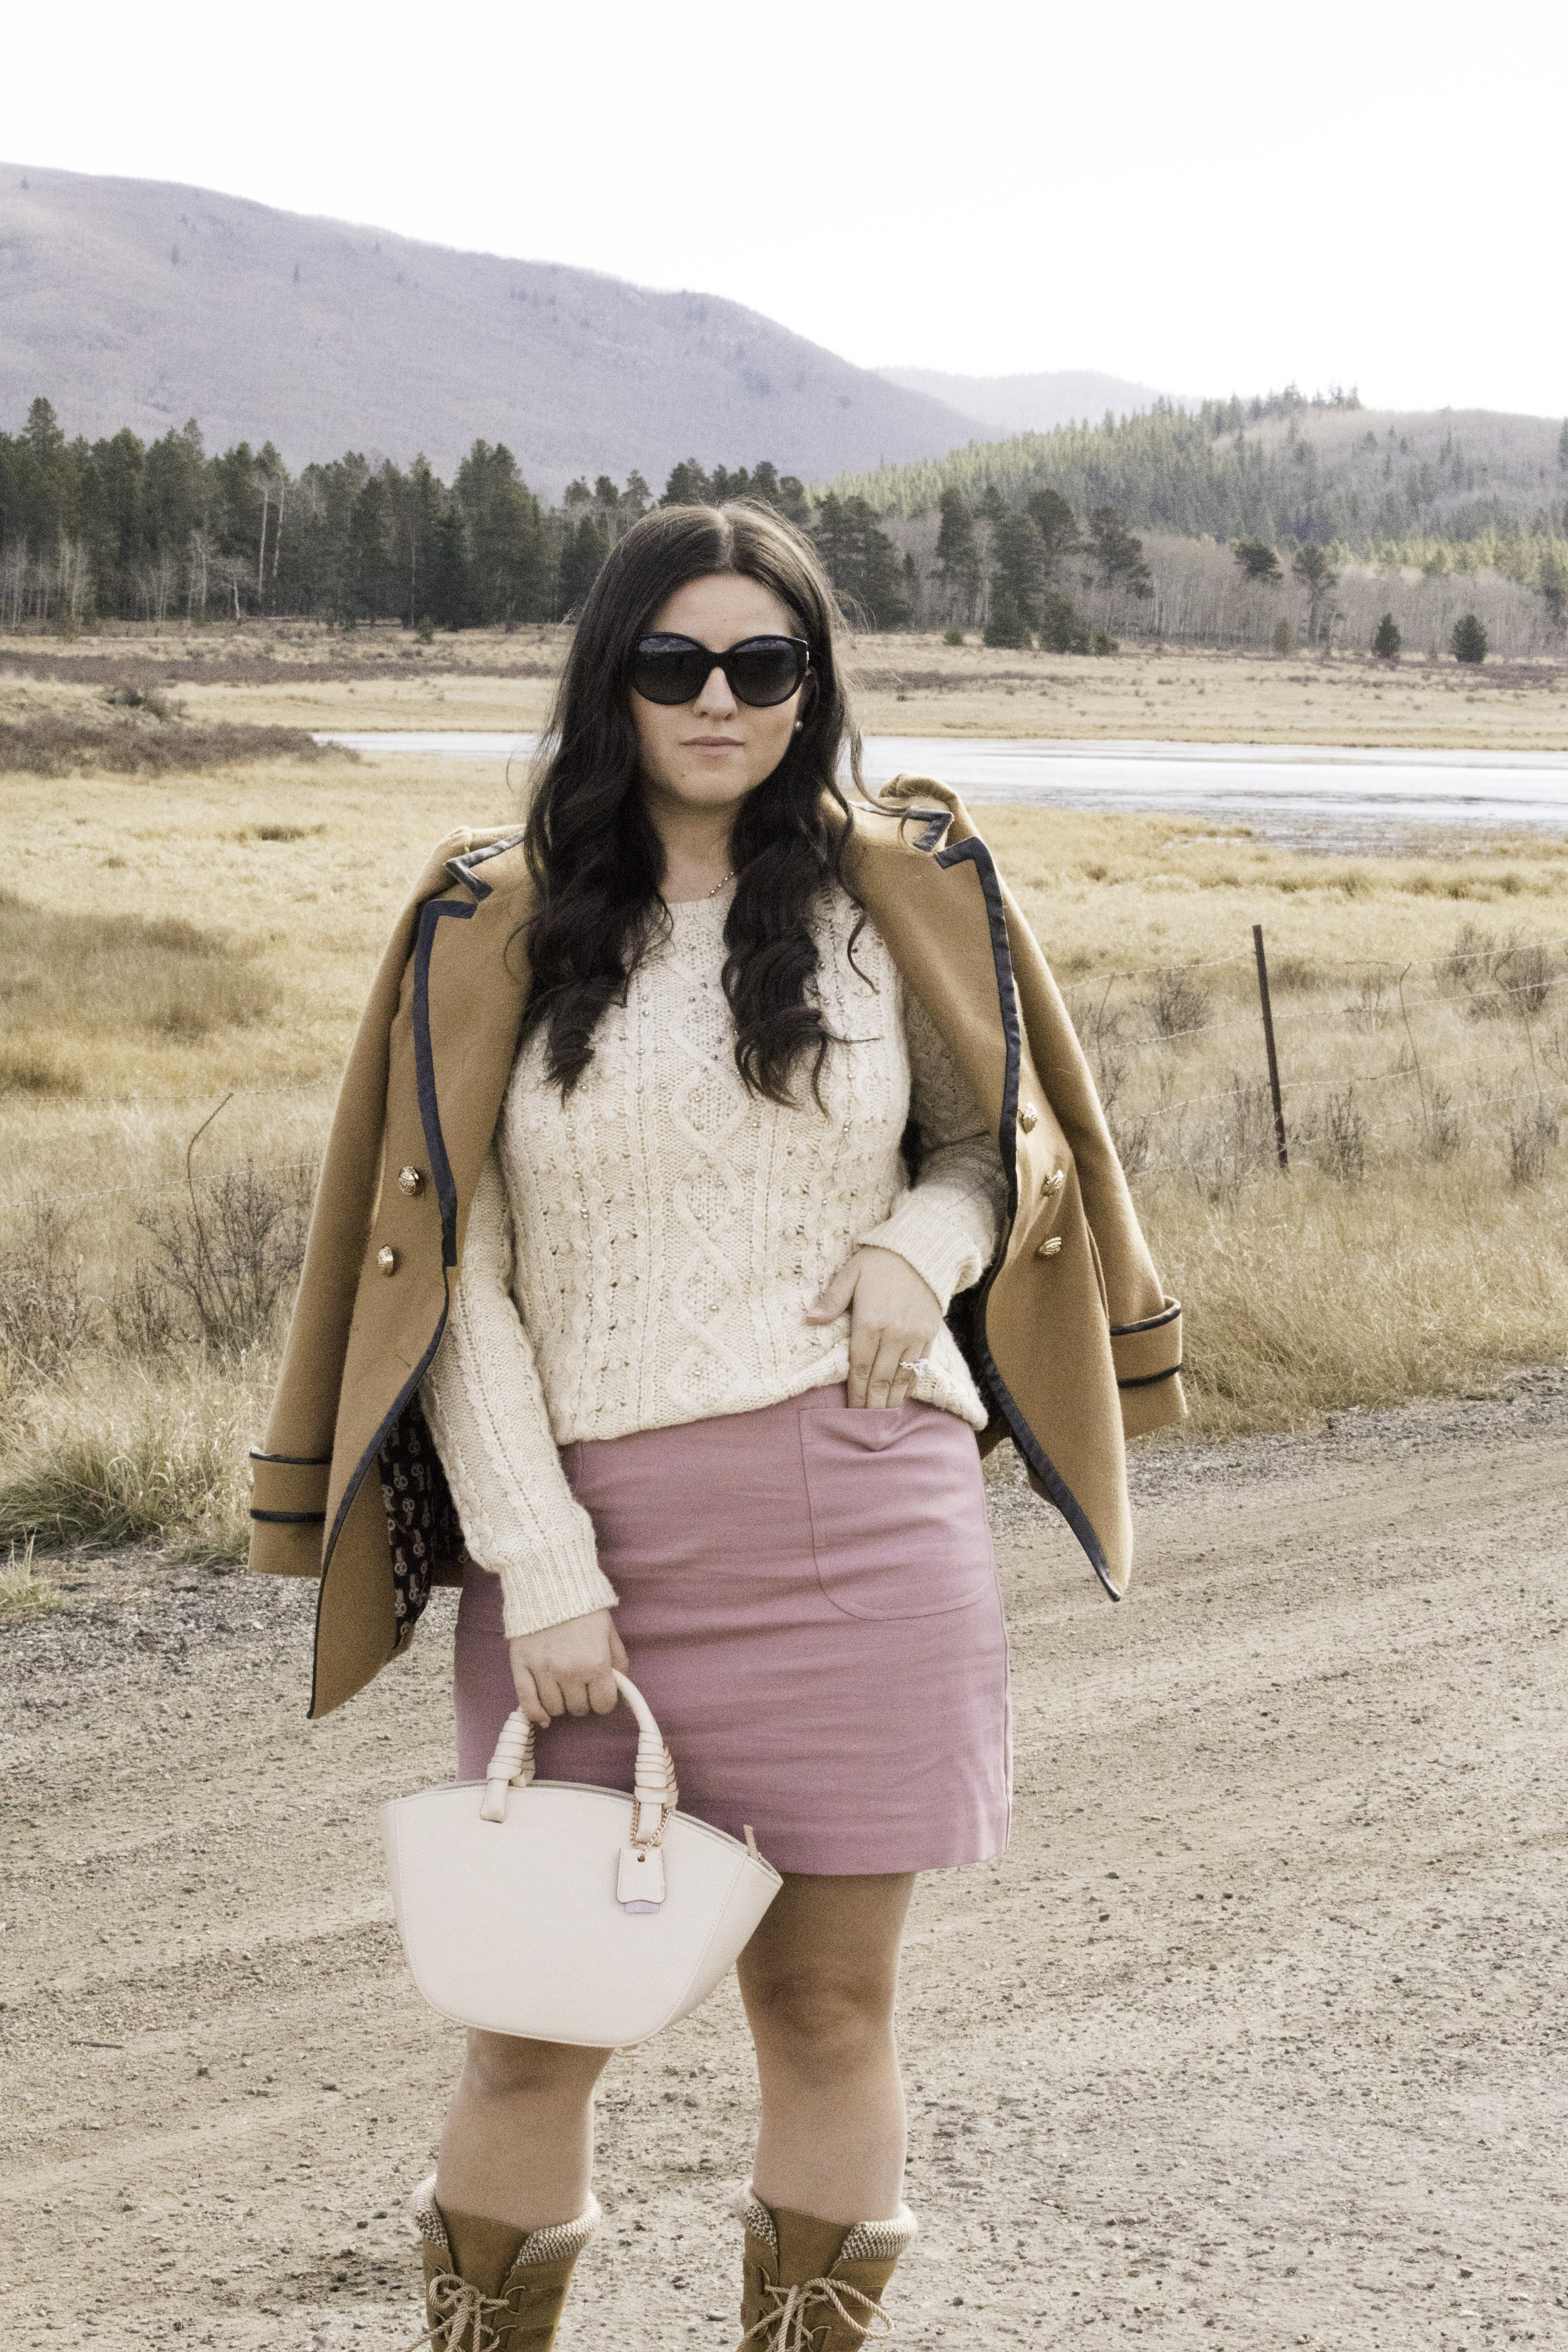 glamping trip giveaway, colorado glamping trip, glamping outfit idea, baily lamb